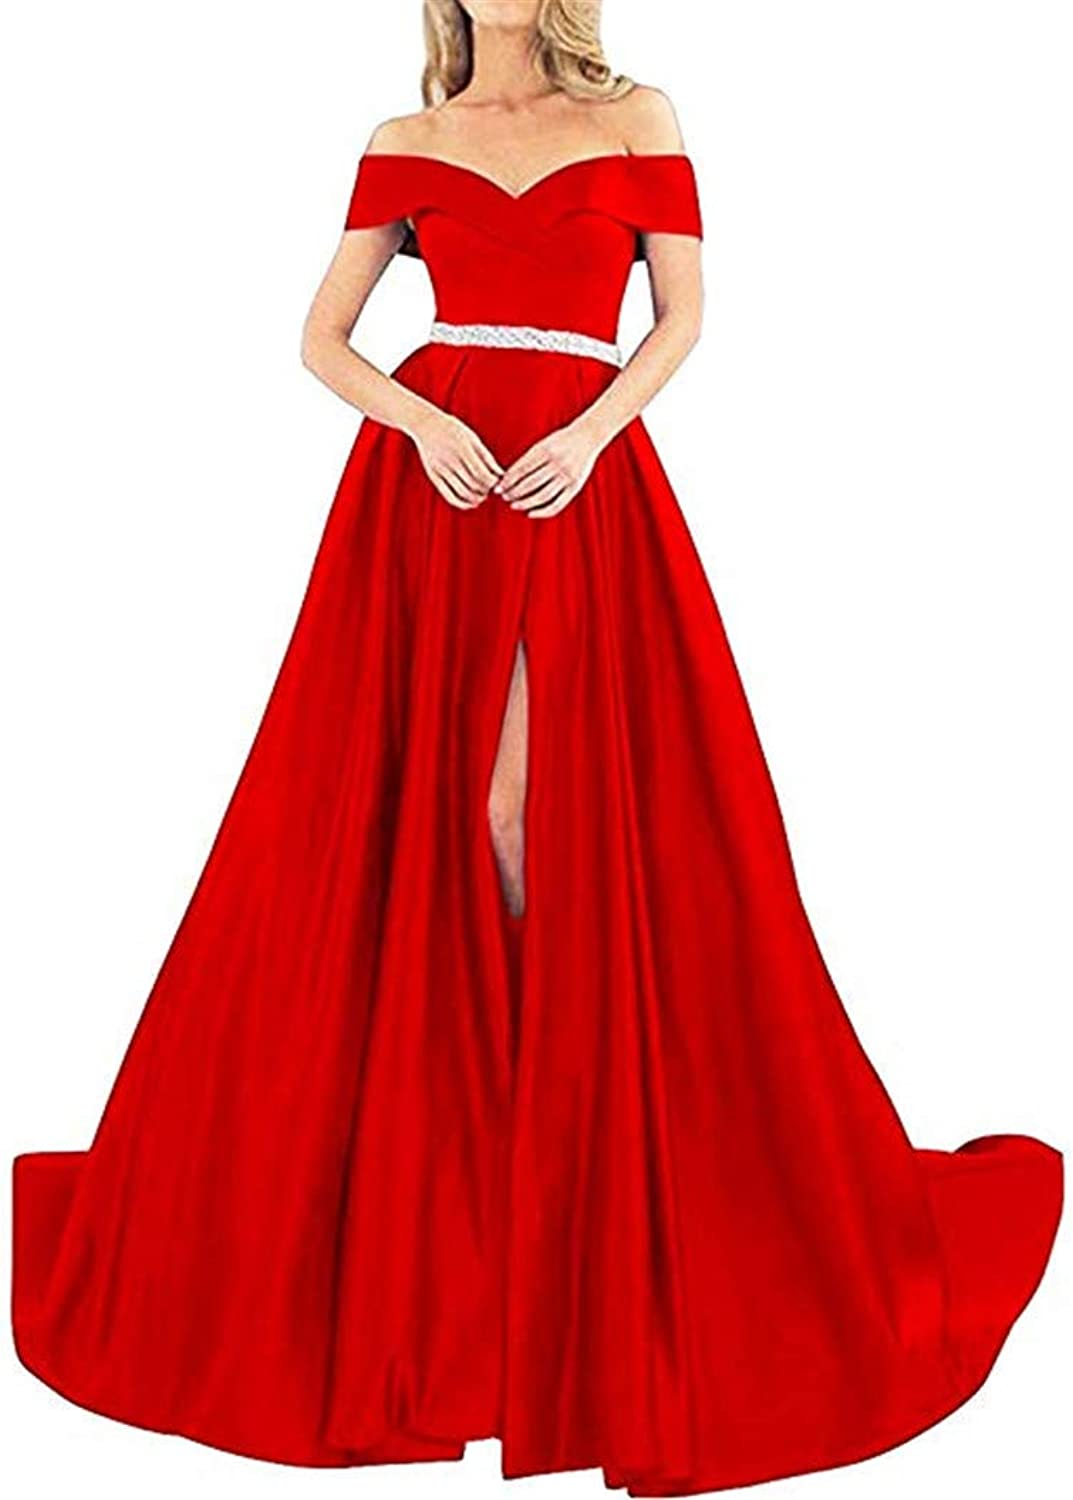 Homdor Off Shoulder Prom Dresses Long ALine Beaded Satin Ball Gowns for Women Formal